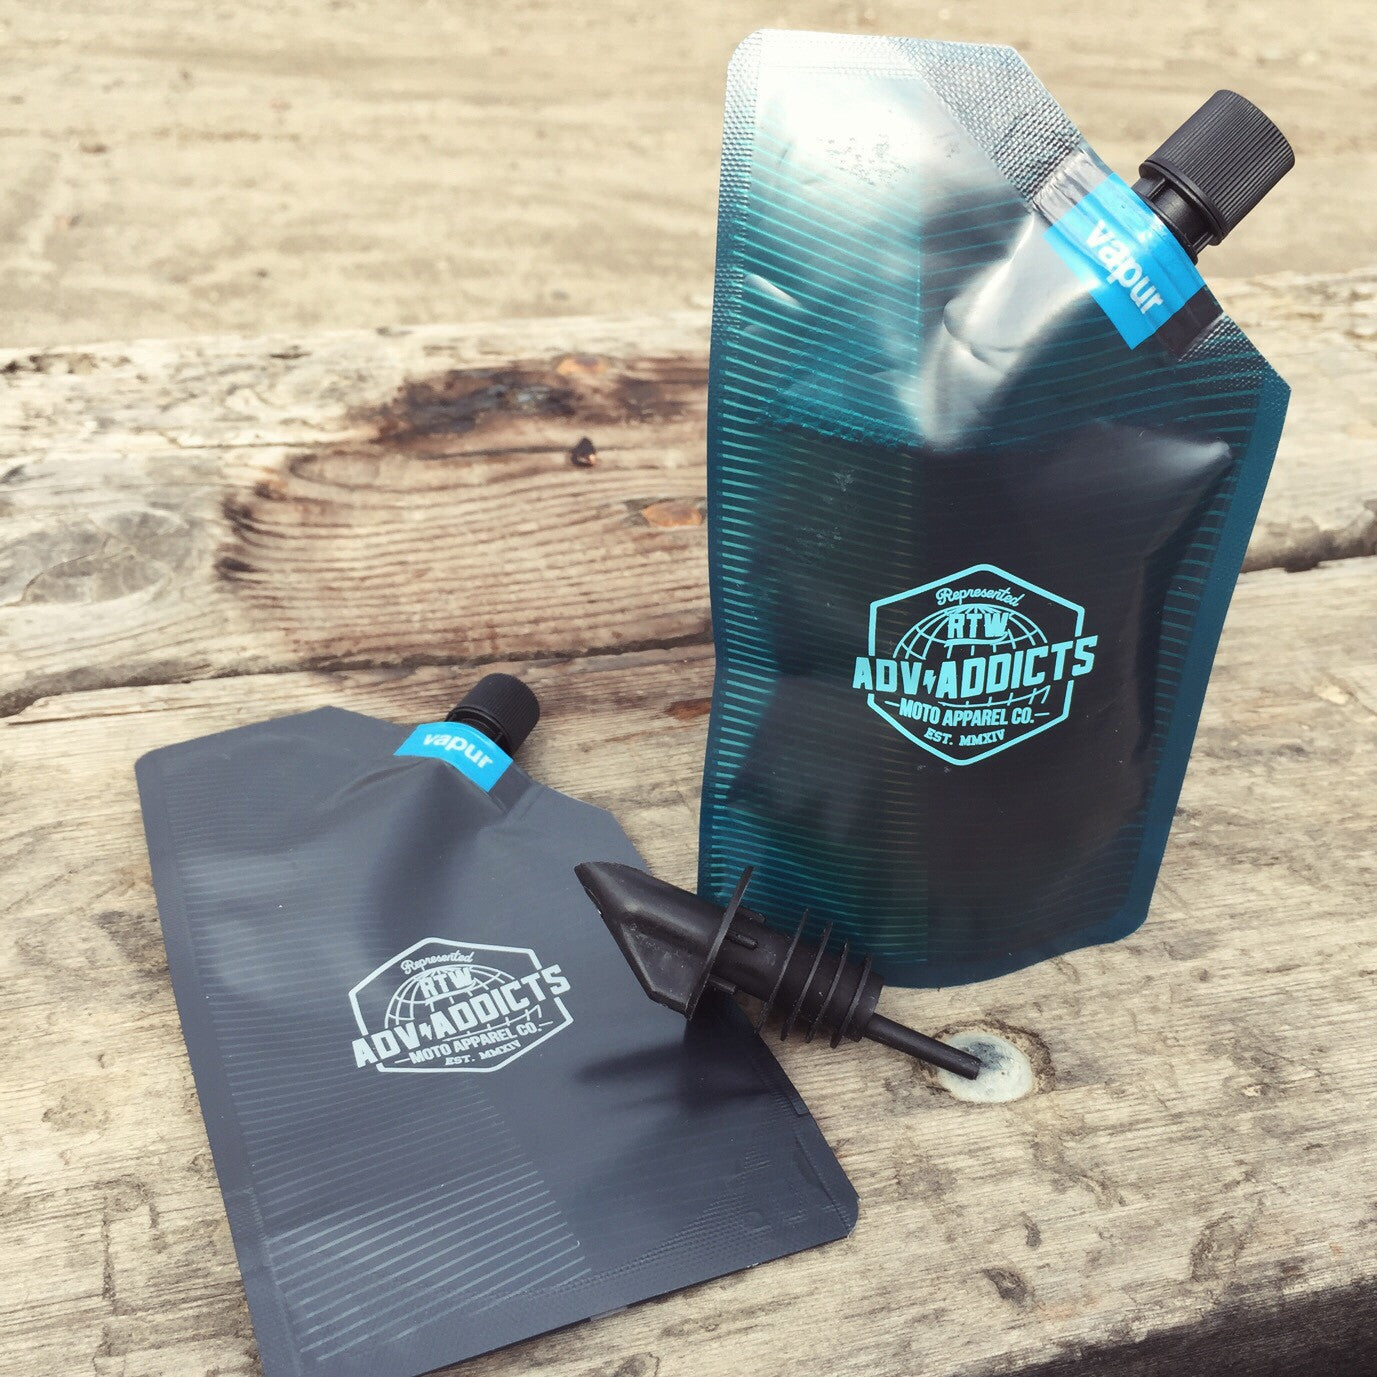 ADV ADDICTS x Vapur Incognito Flask